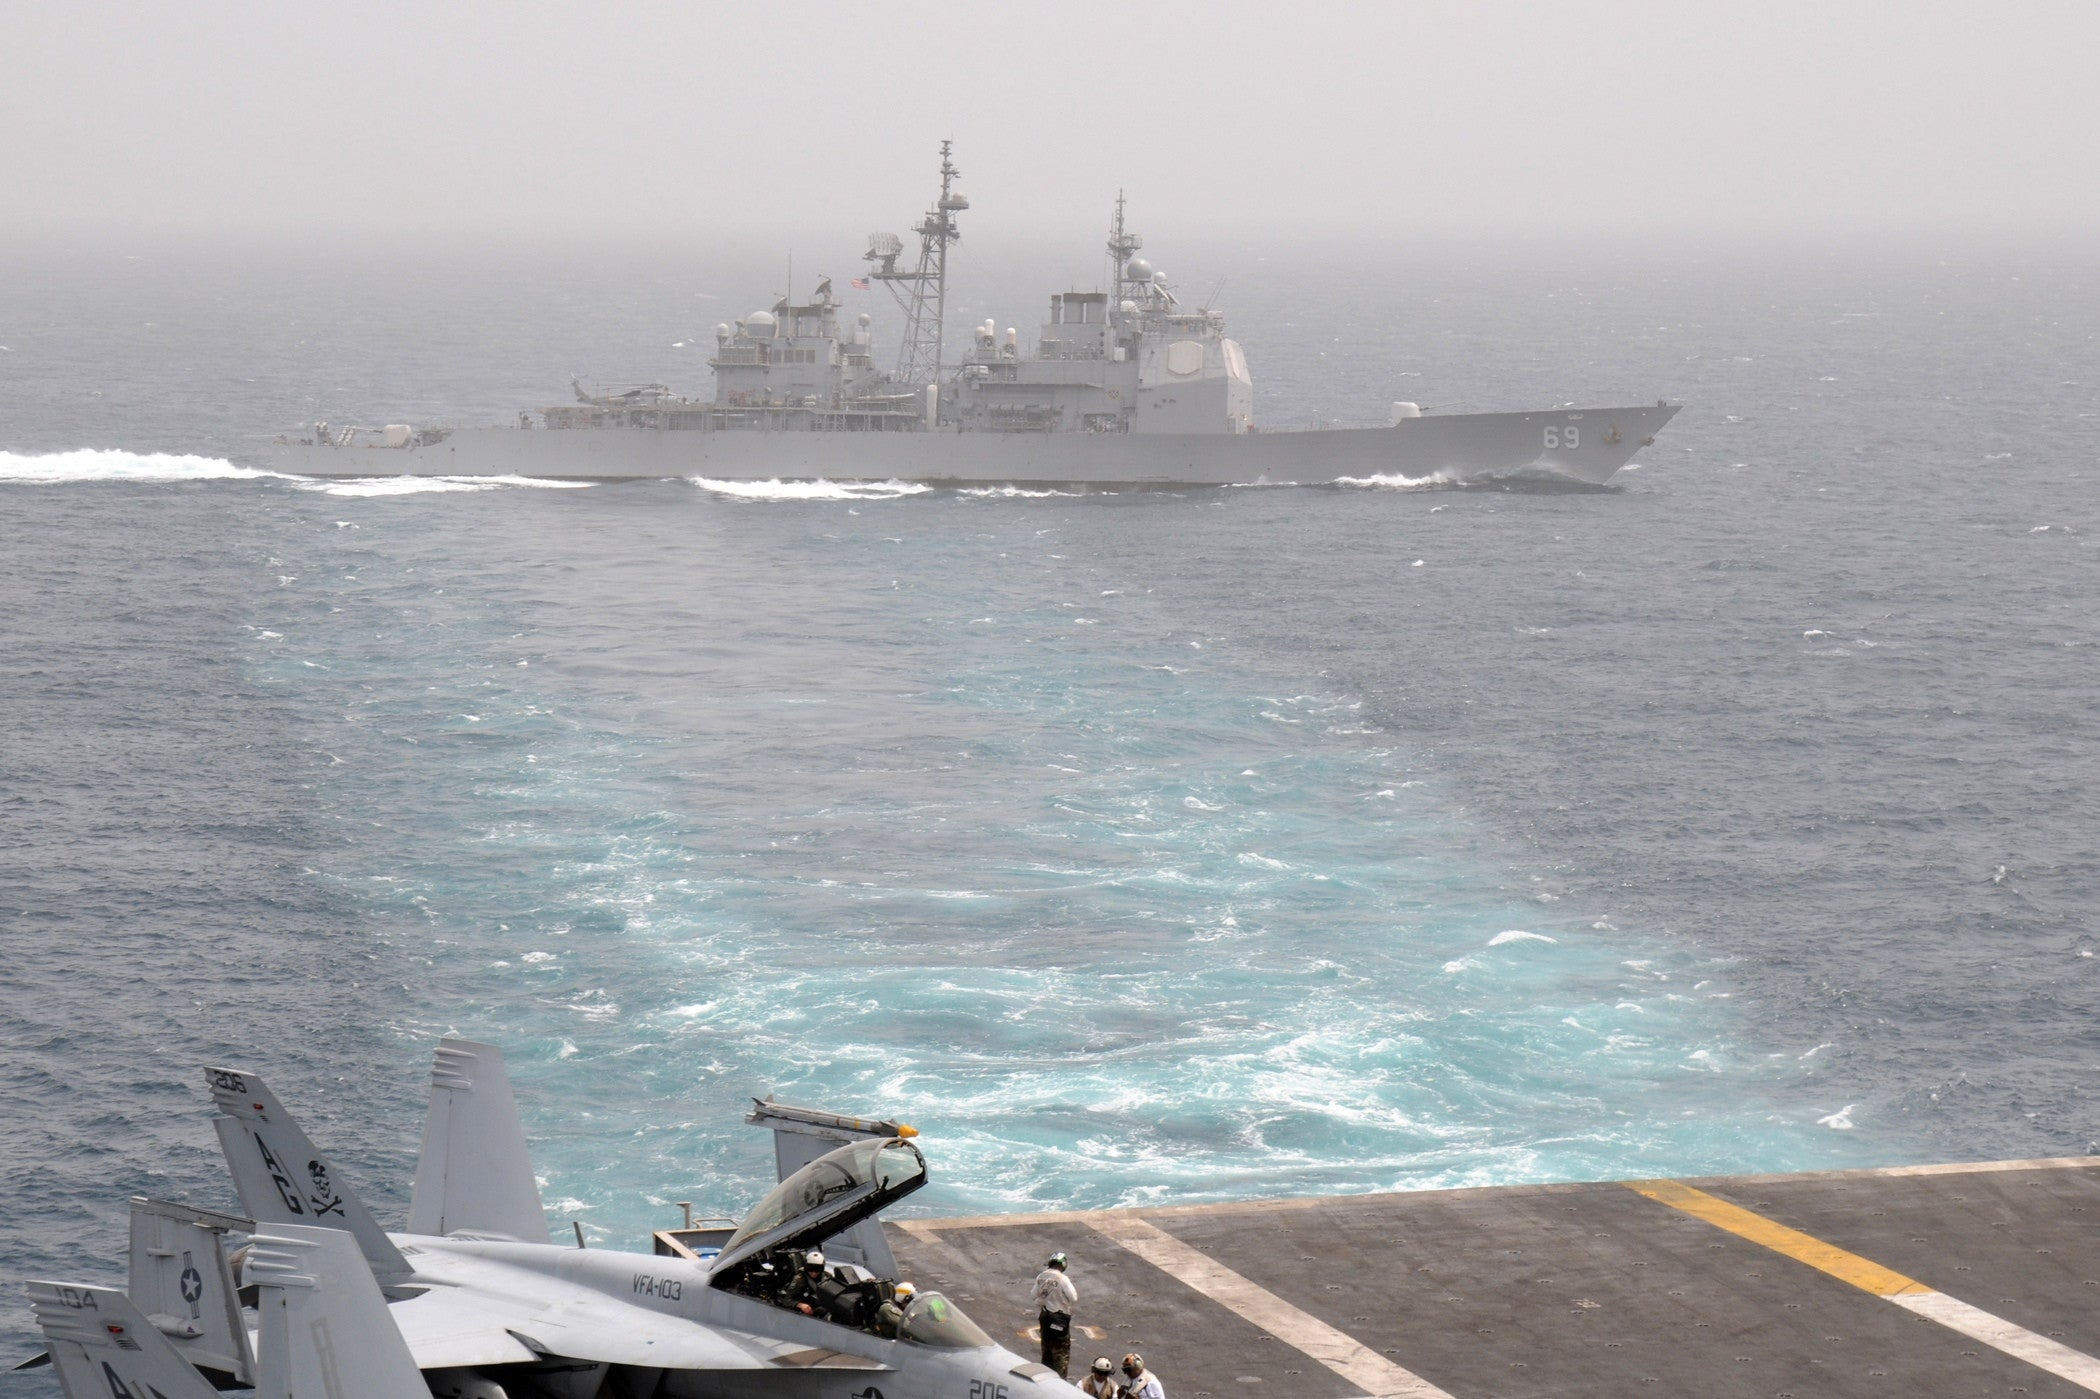 "USS Vicksburg CG-69 Alongside USS Dwight D. Eisenhower CVN-69 ARABIAN SEA (April 2, 2009) - 4"" x 6"" Photograph"